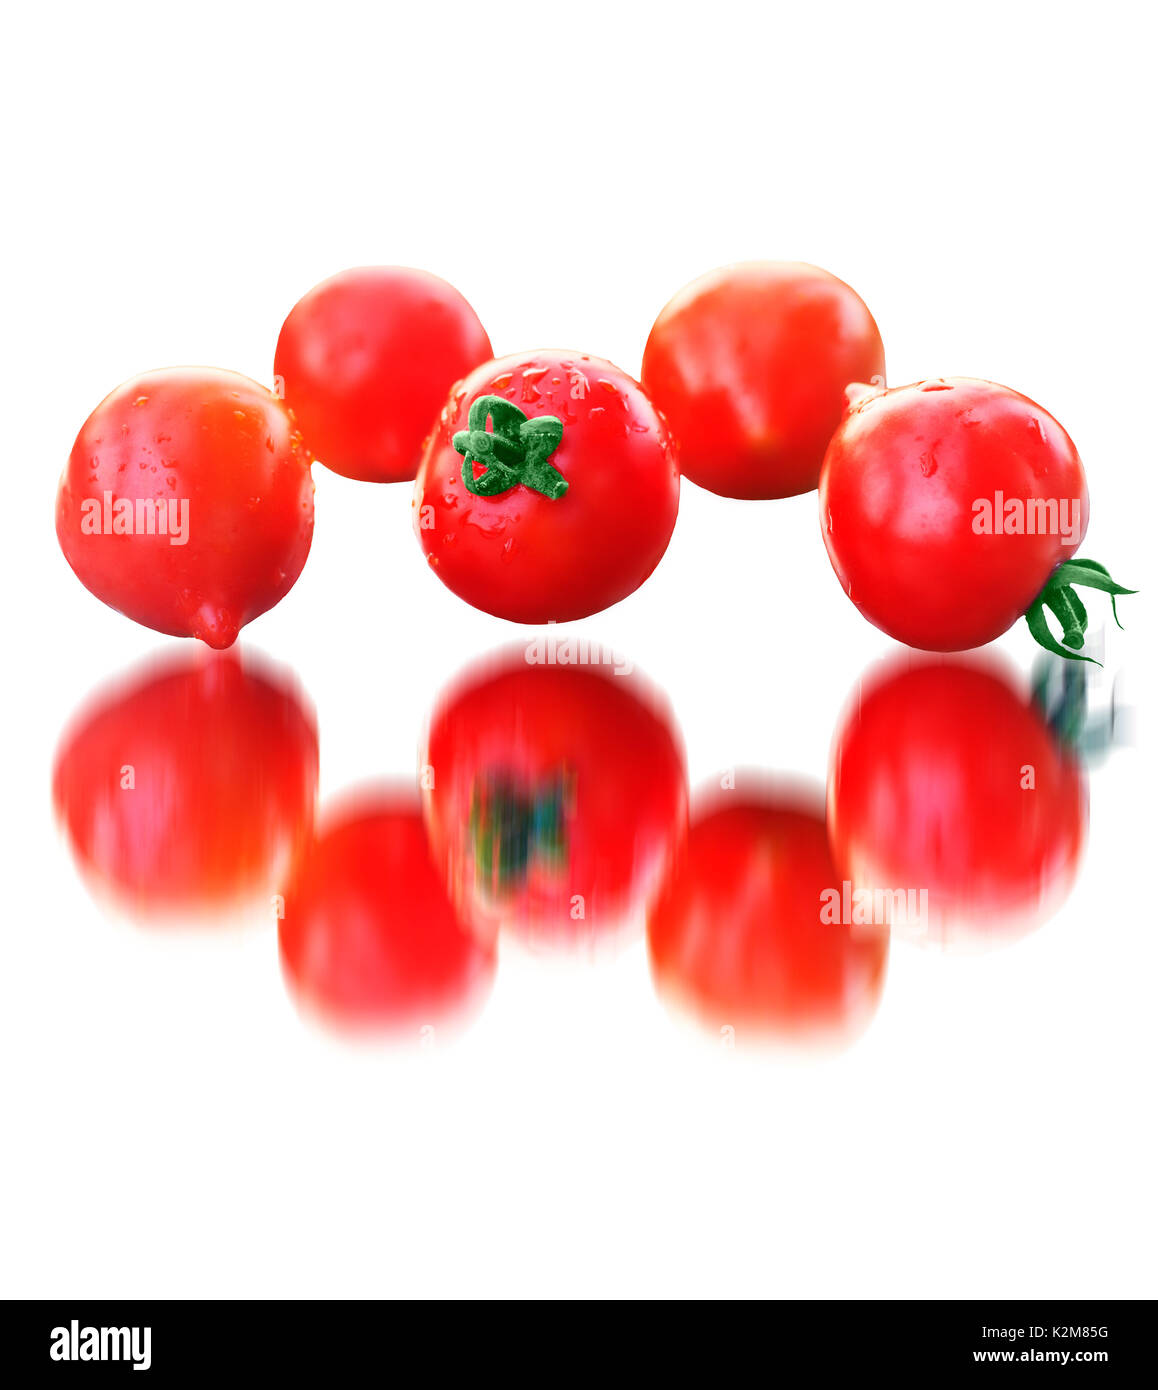 tomato kaleidoscope on a white background - Stock Image